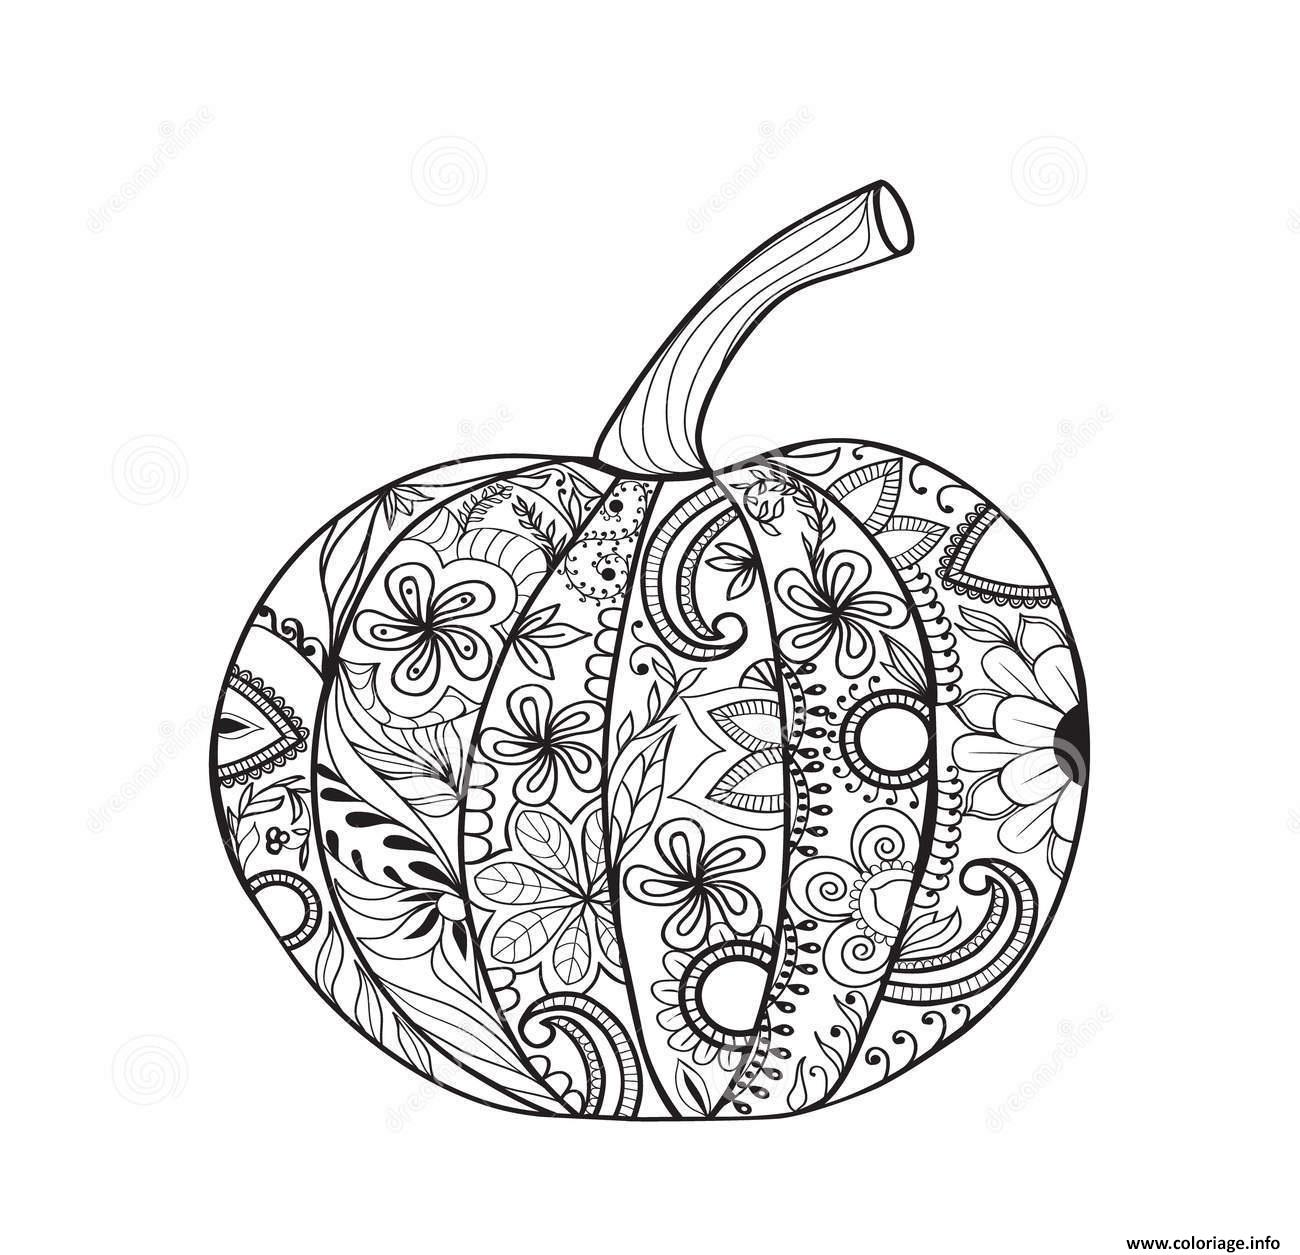 Coloriage citrouille halloween adulte simple - Dessin halloween a imprimer ...